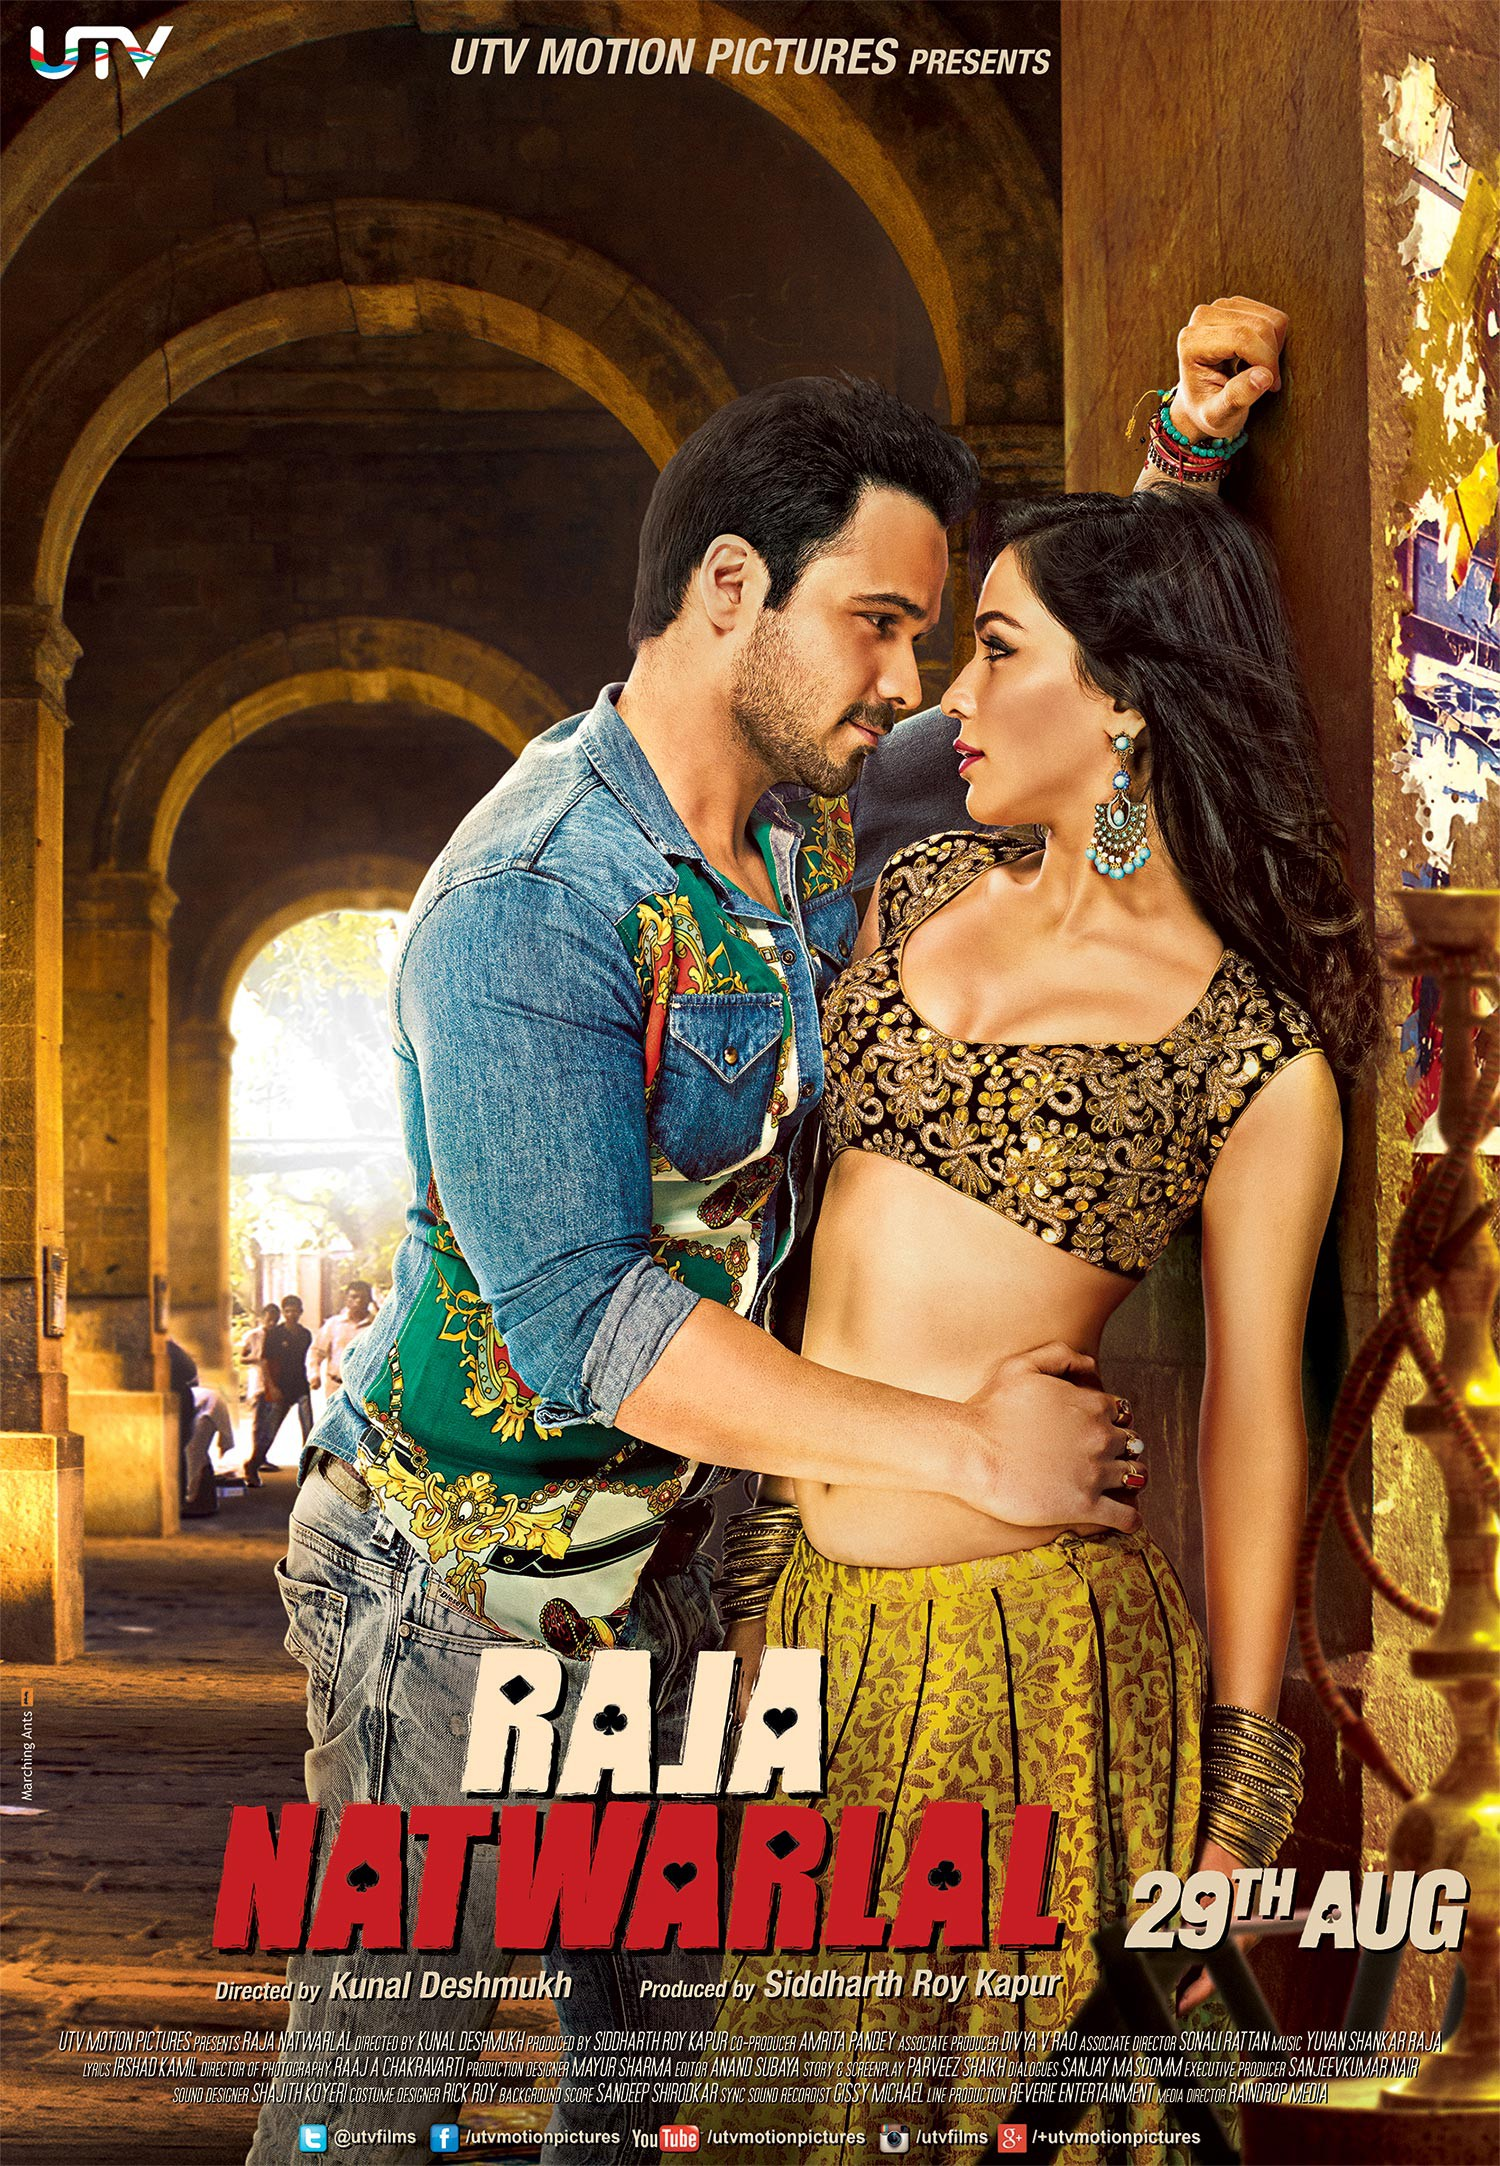 Raja Natwarlal 2014 Hindi 1080p HDRip ESubs 1.6GB Download